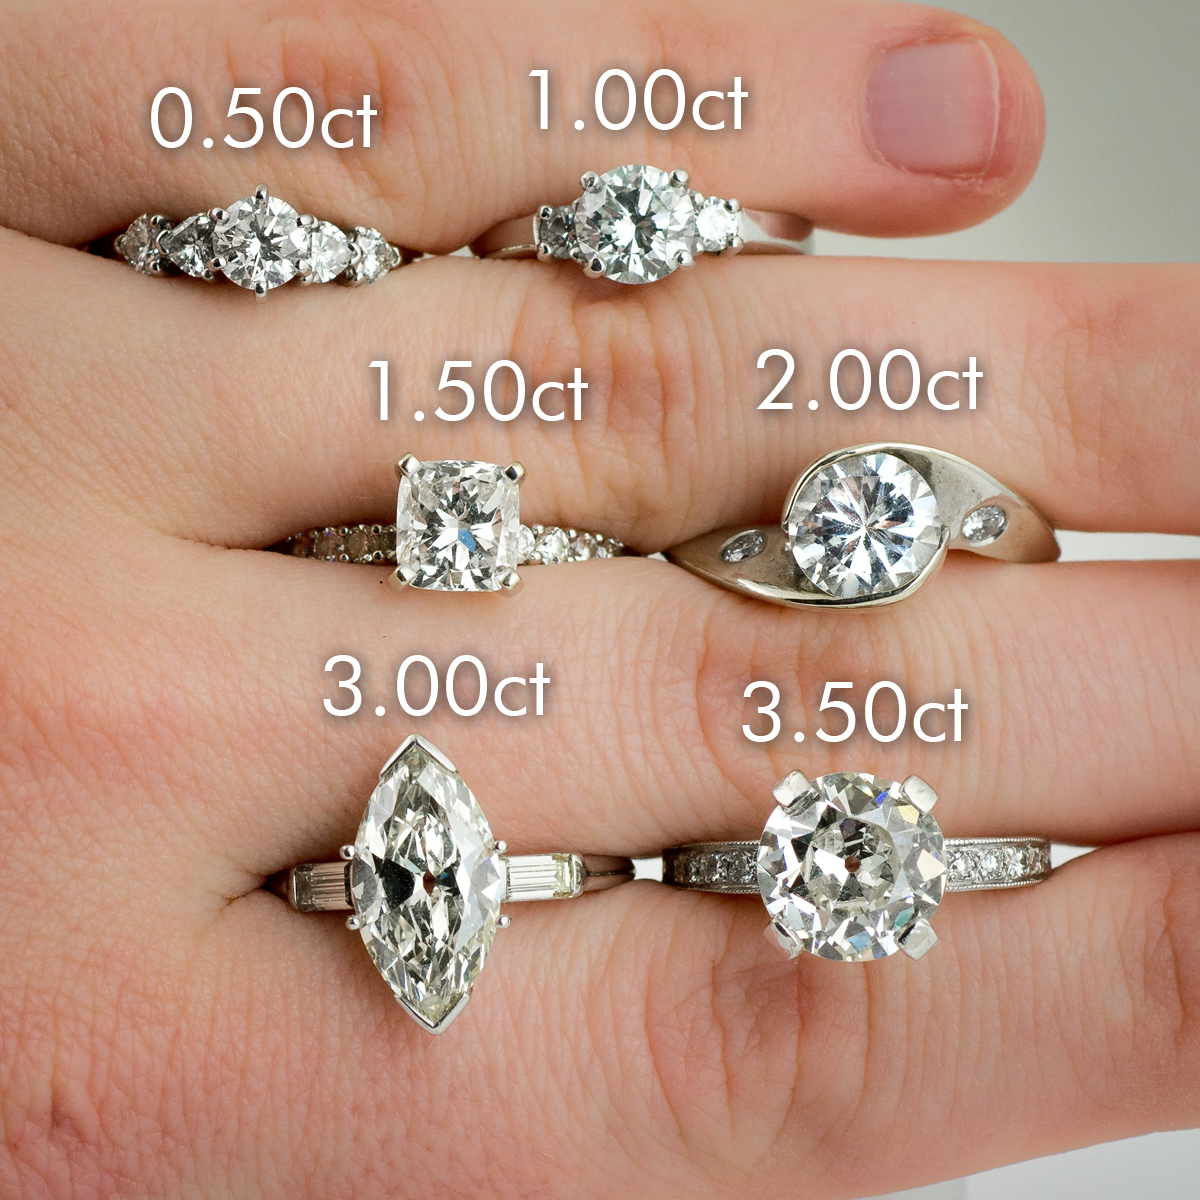 Diamond buying guide the 4 cs learn about diamond color cut carat weight nvjuhfo Images